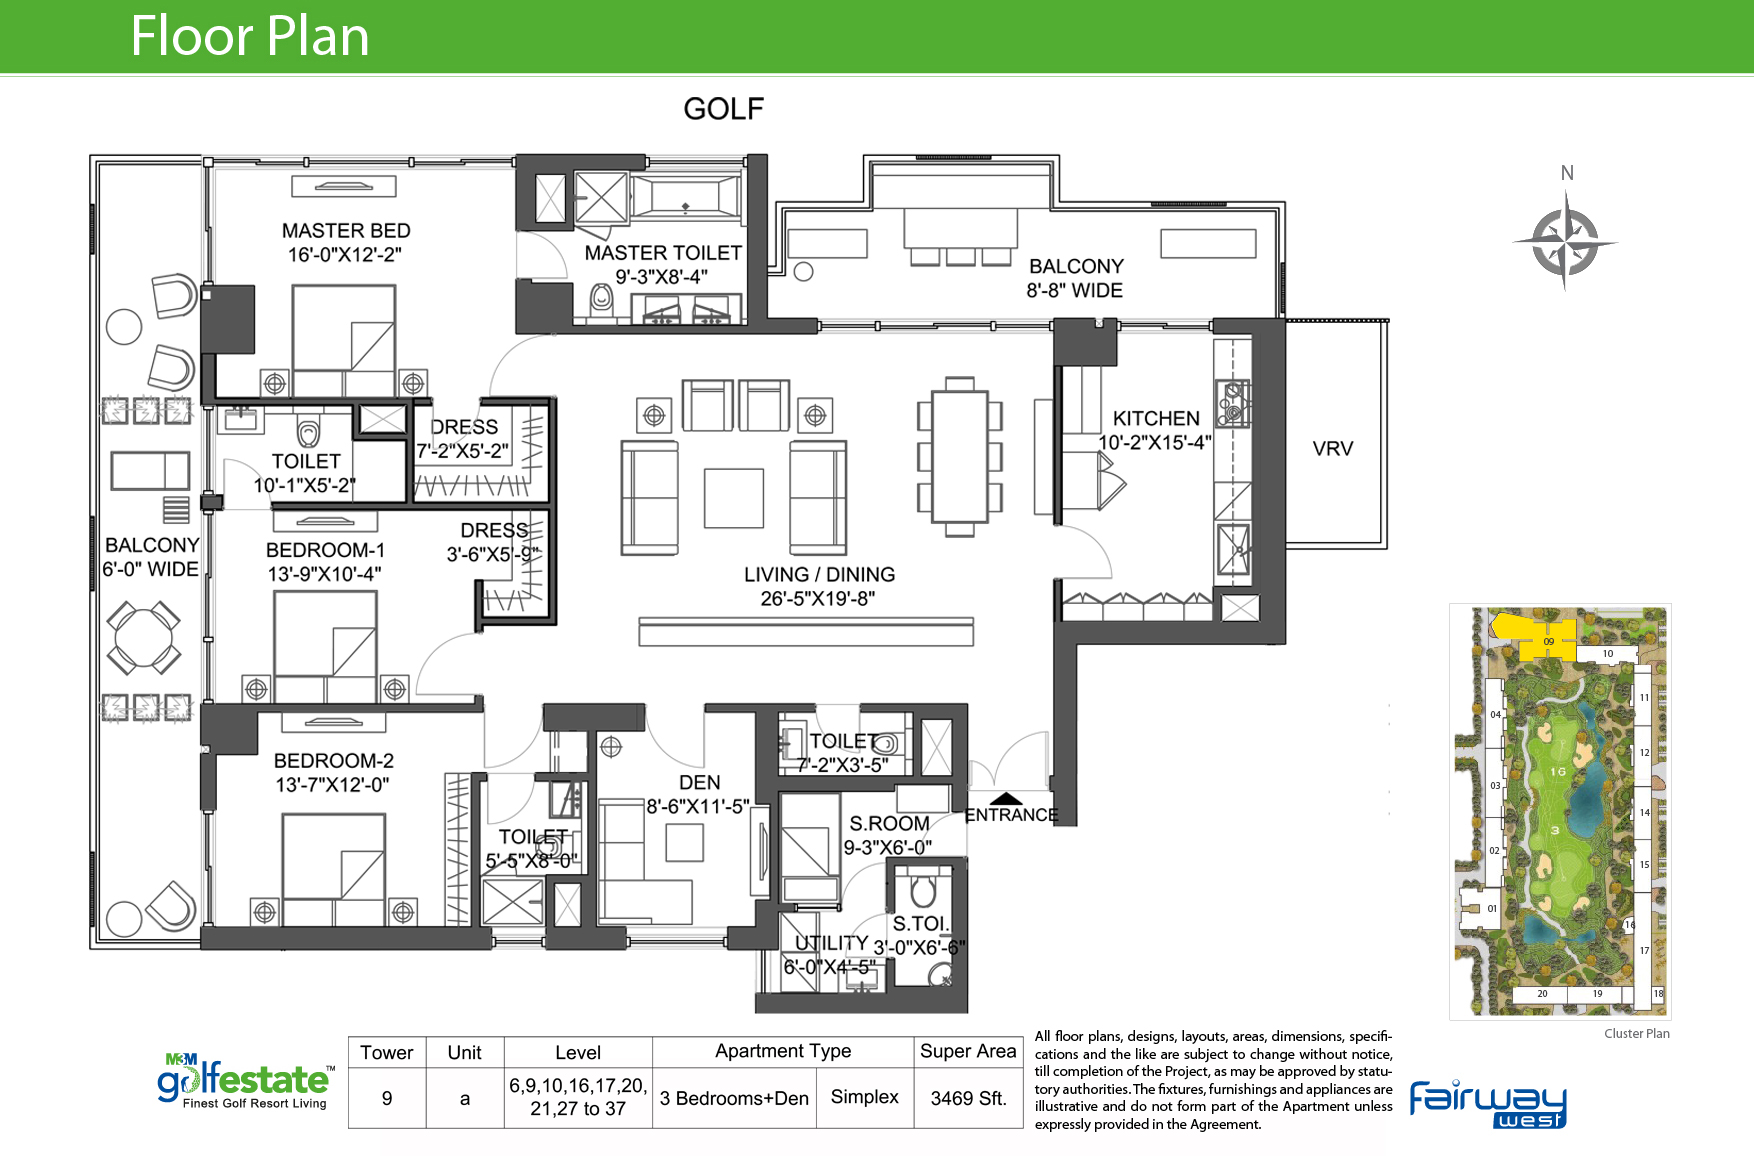 Floor plan of M3M Golf estate Fairway West 3469 Sqft